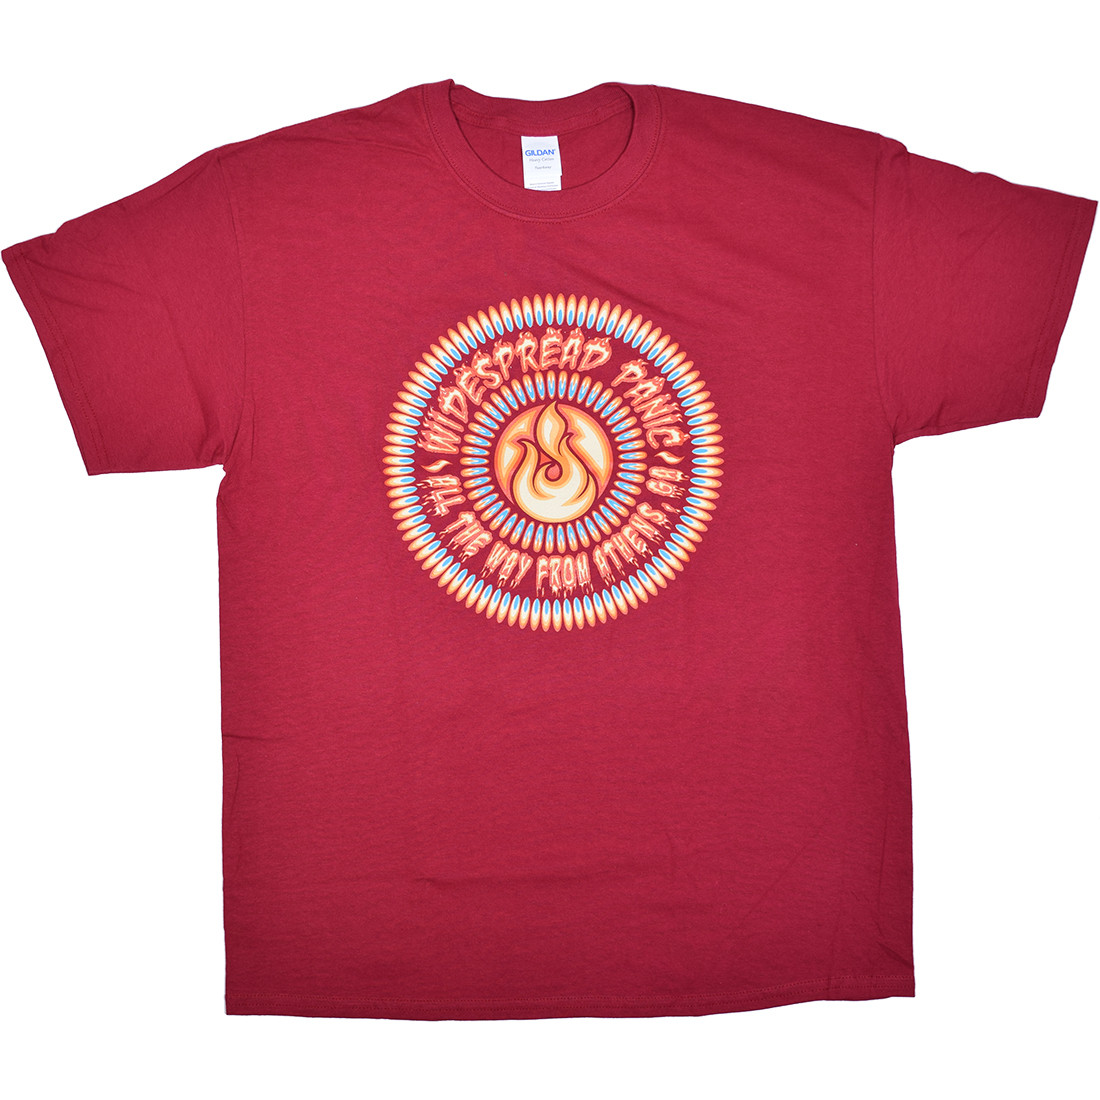 Widespread Panic All The Way From Athens Red T-Shirt